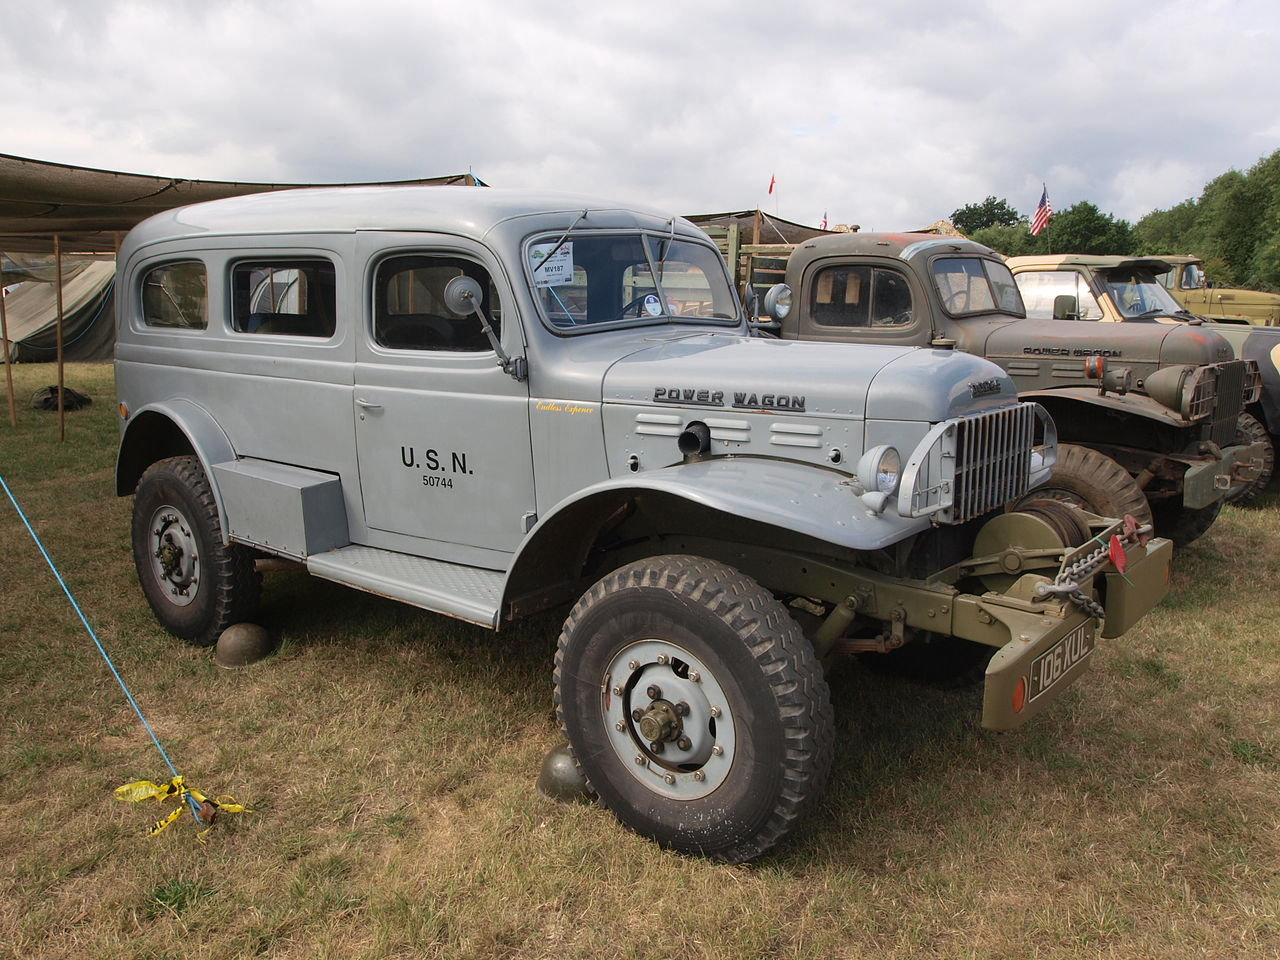 1958 Dodge Powerwagon with fully enclosed carryall body. (Picture courtesy Wikipedia).